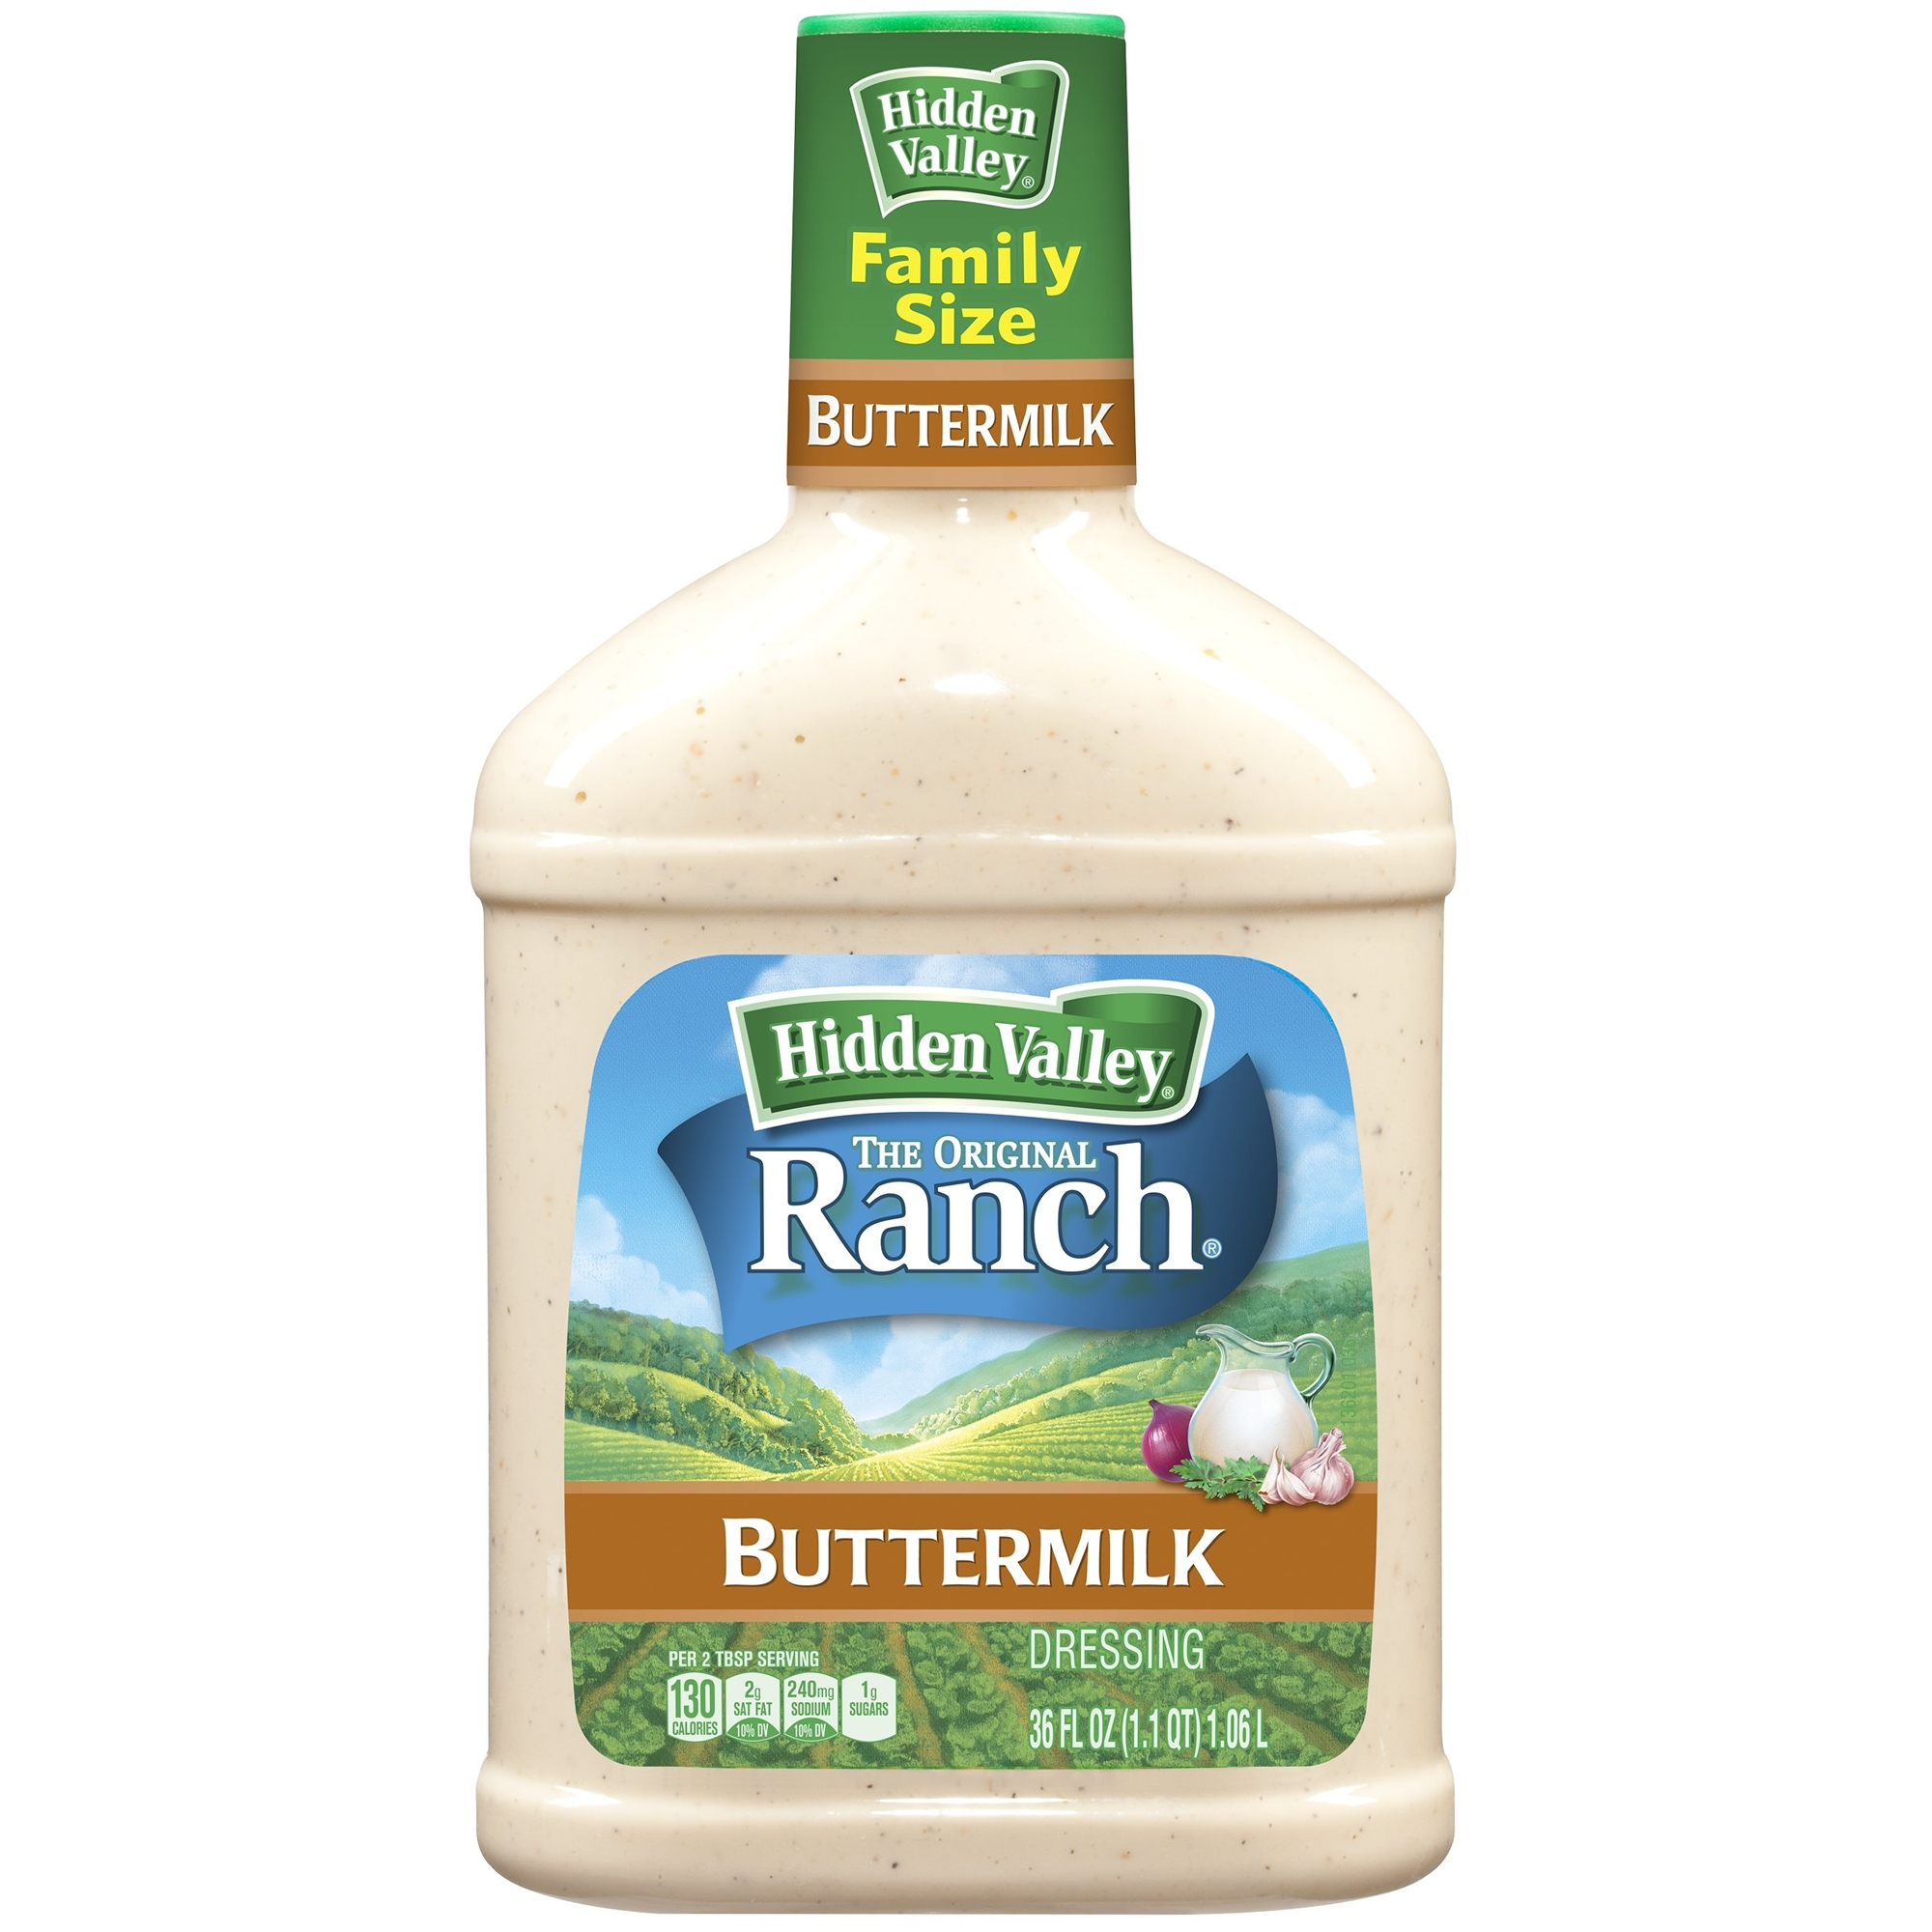 Hidden Valley Original Ranch Dressing, Buttermilk, 36 Fluid Ounces